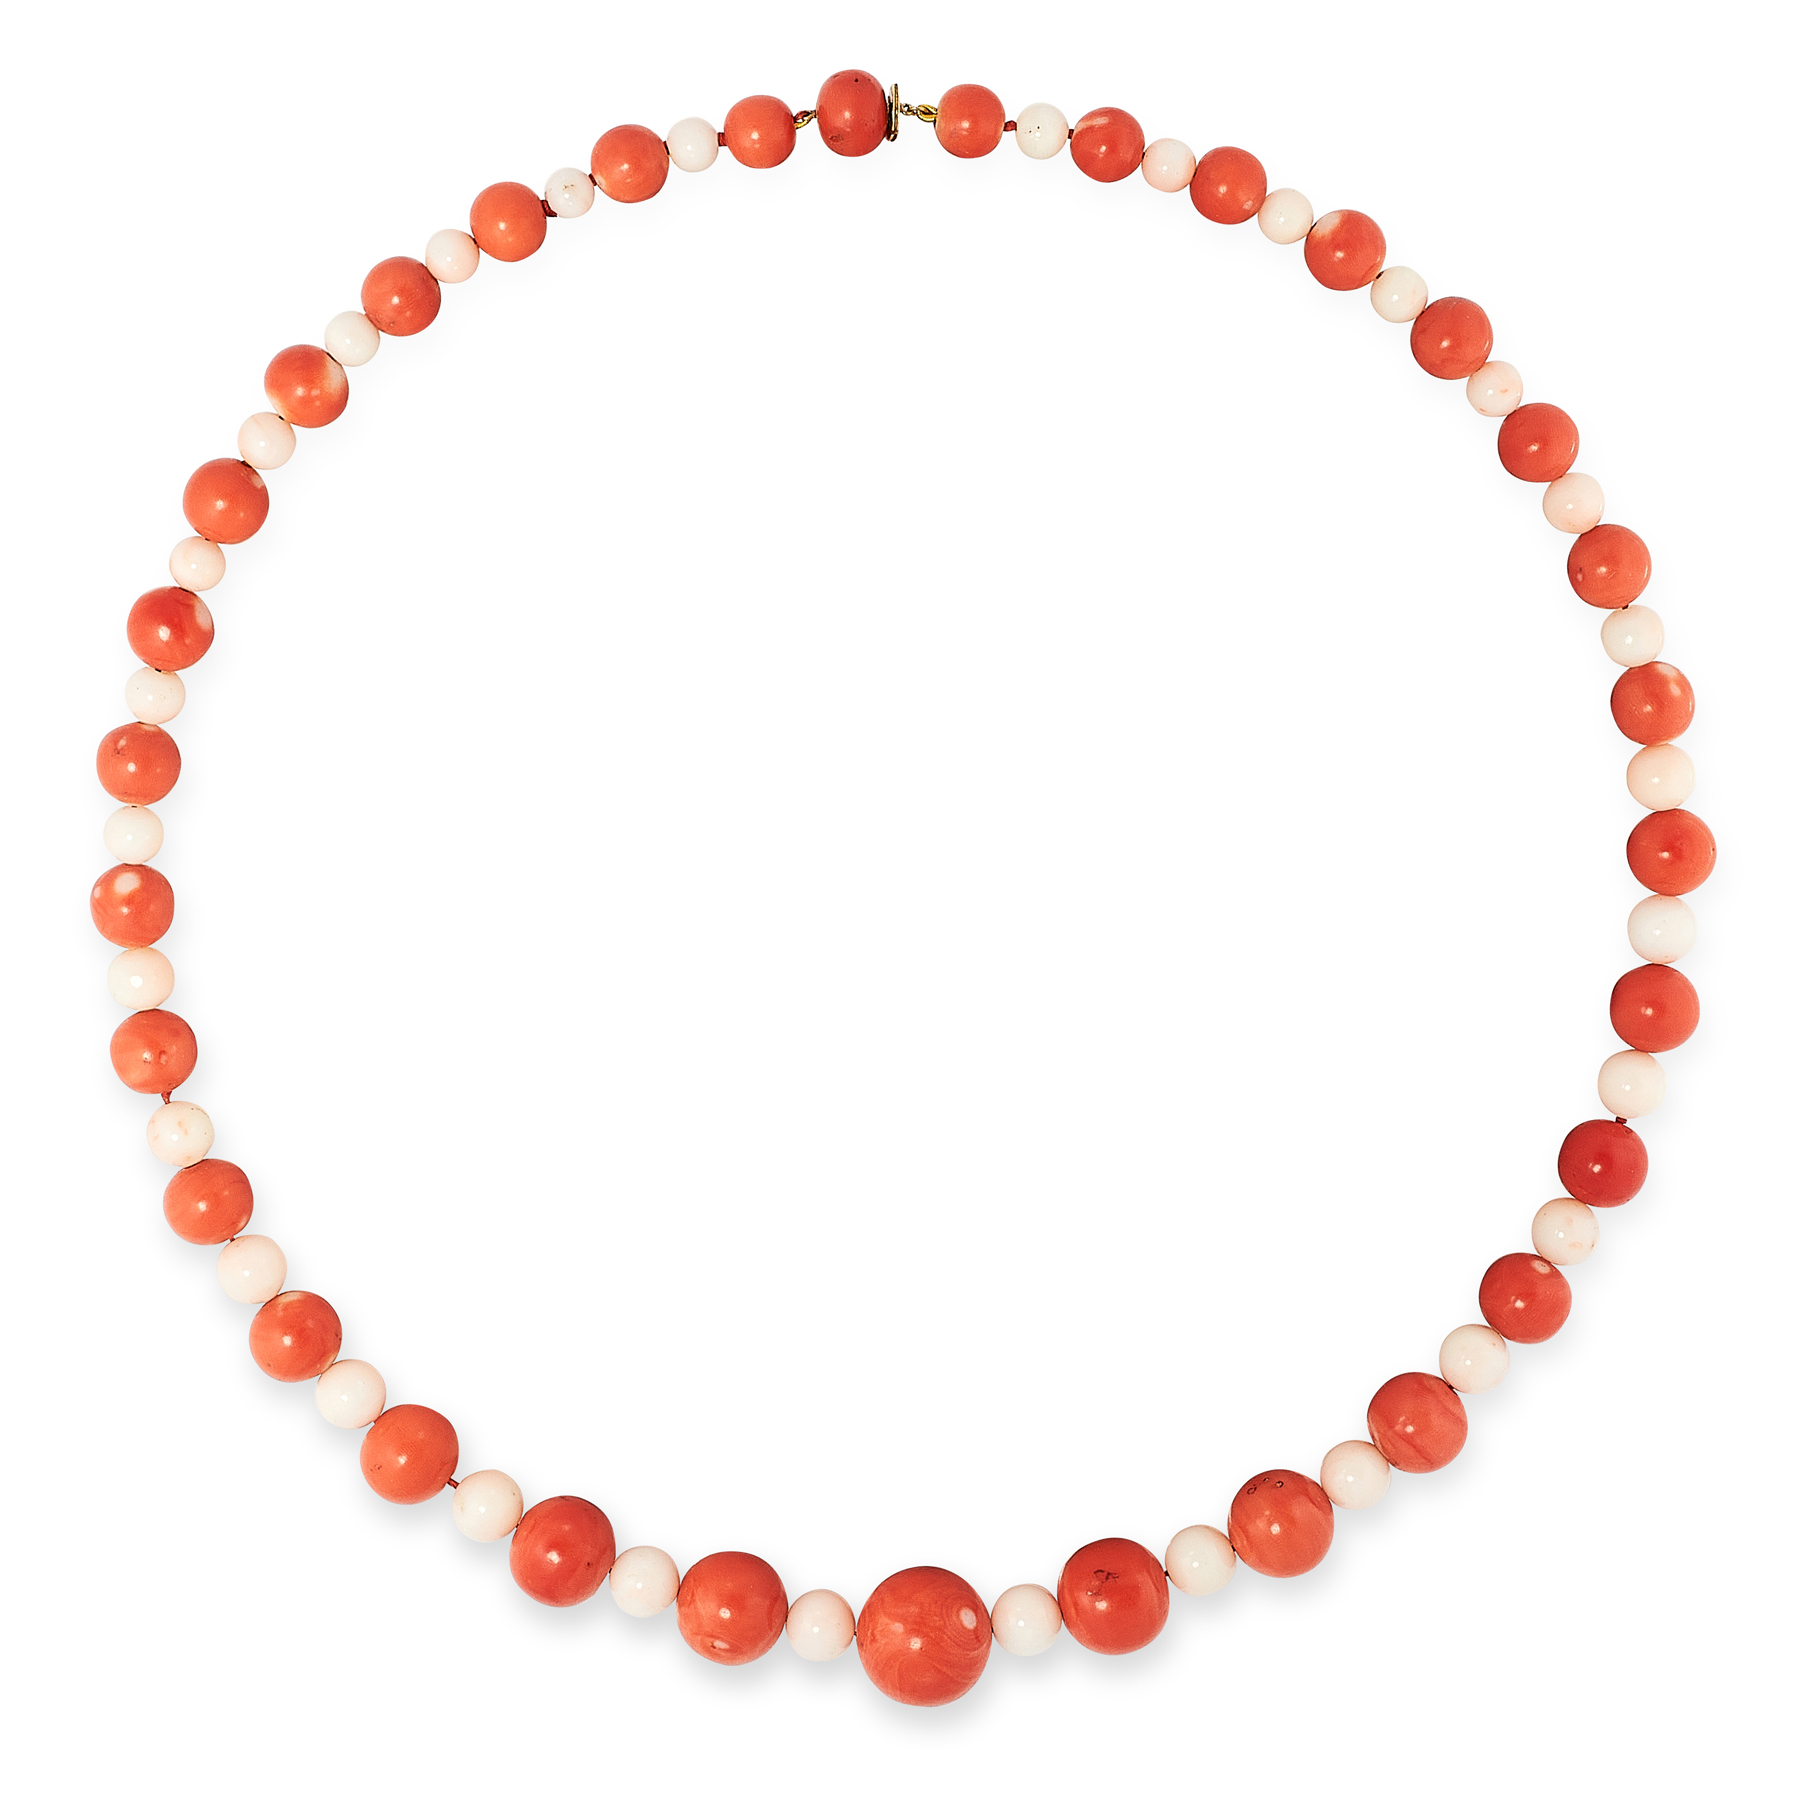 AN ANTIQUE CORAL AND ANGEL CORAL BEAD NECKLACE comprising a single row of sixty-two graduated